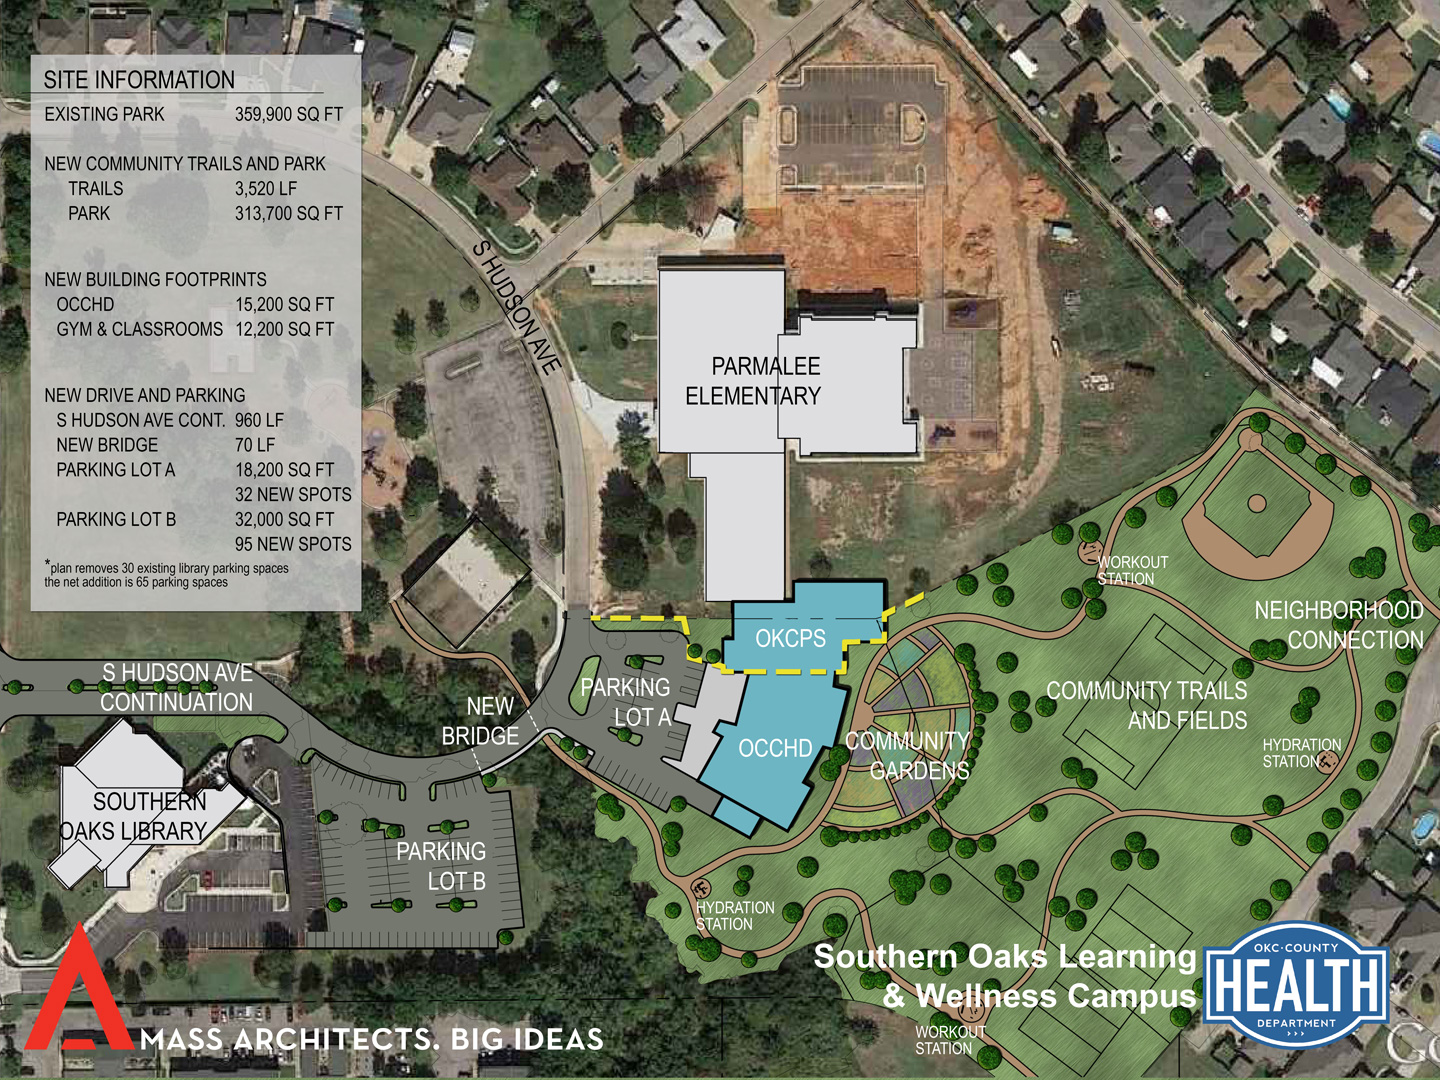 Southern_Oaks_Learning_and_Wellness_Campus-18x24.jpg